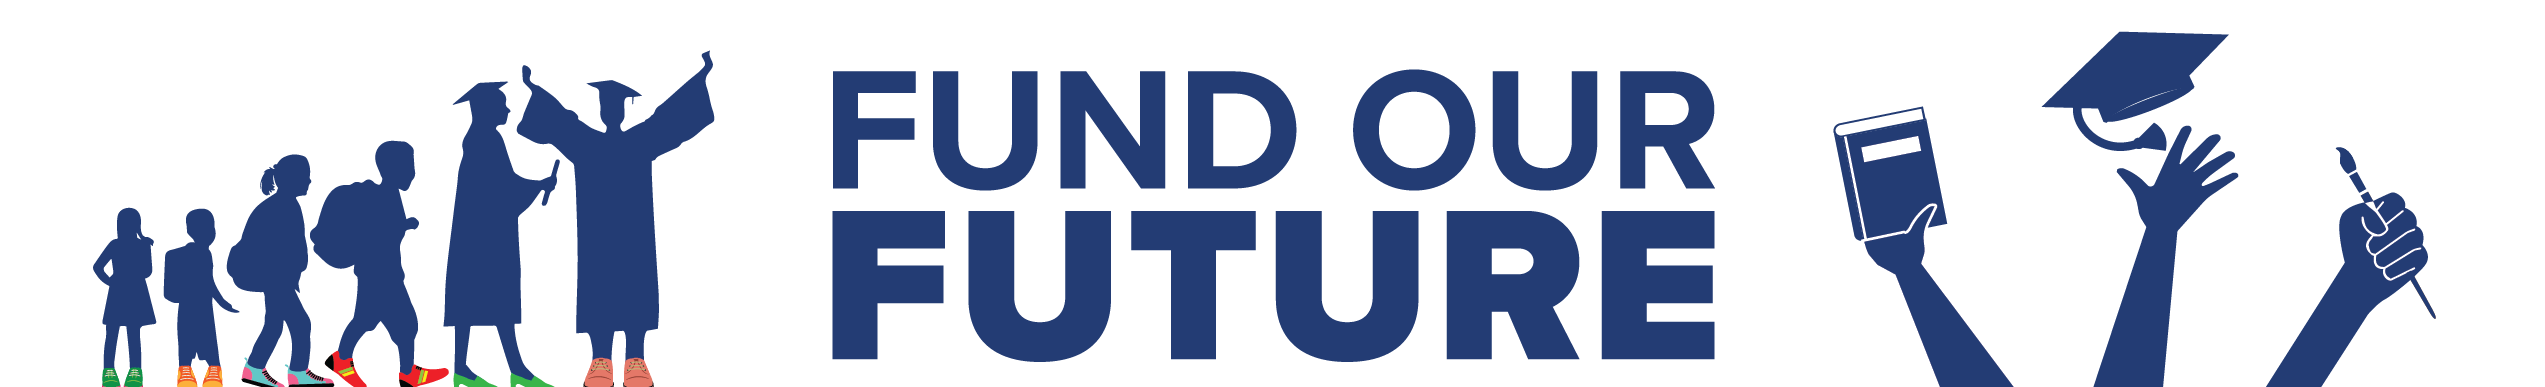 fin_fundourfuture_coalition_logo_header_yellow_nobackground-01